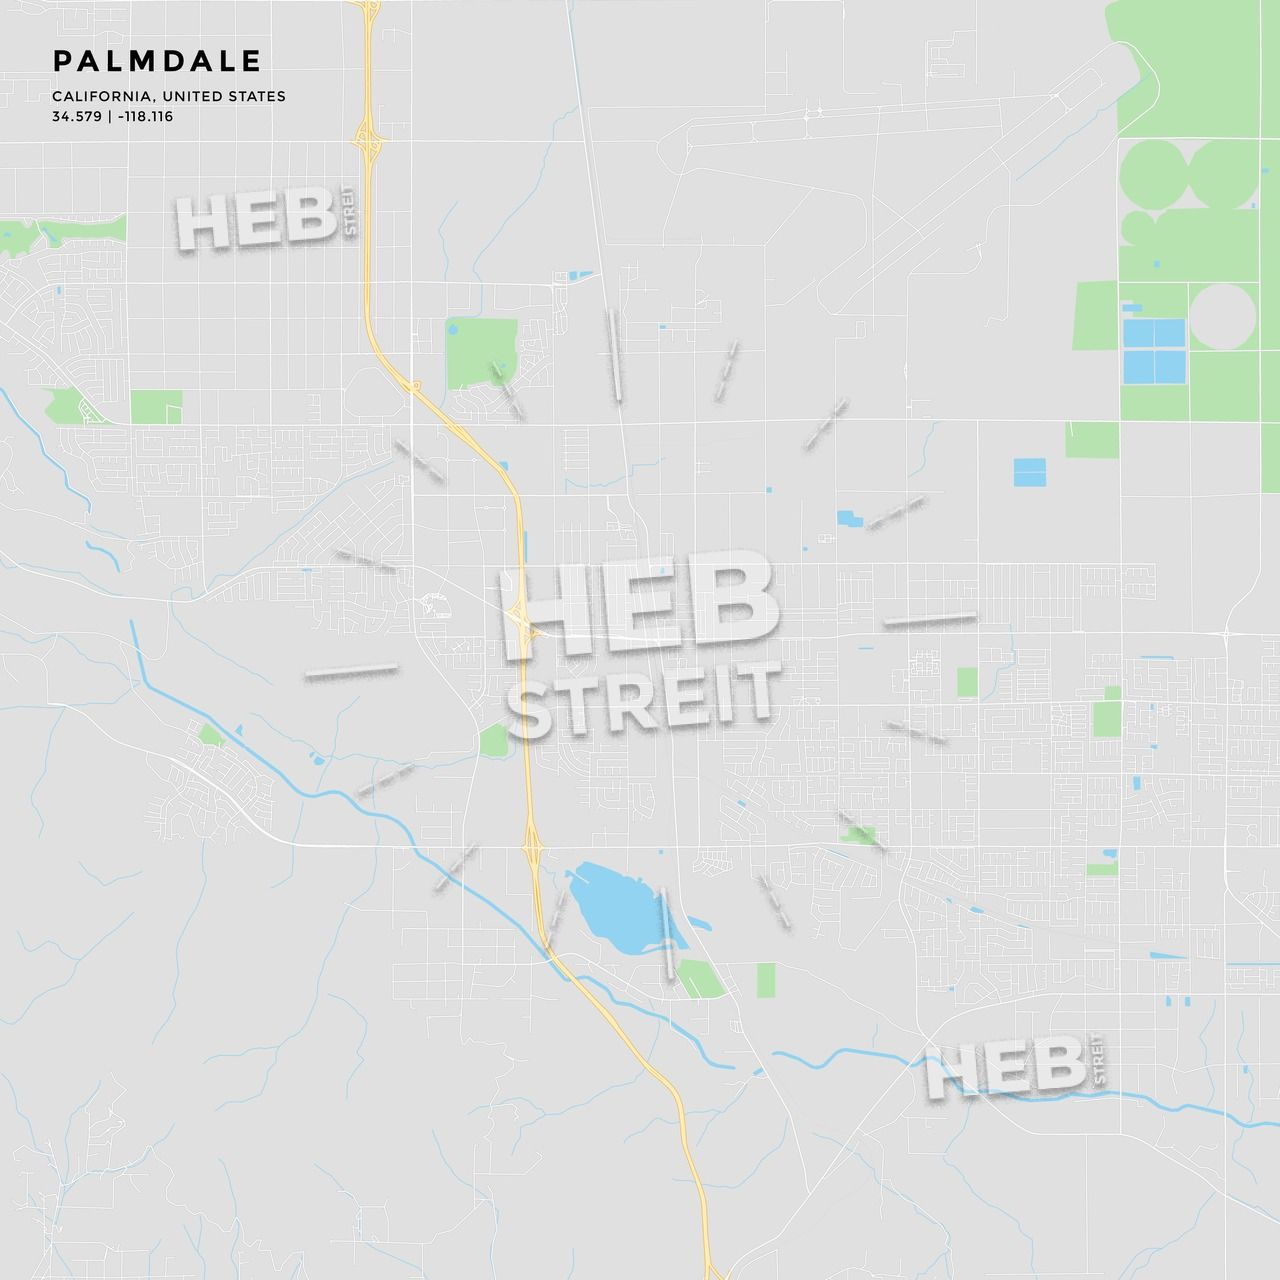 Printable street map of Palmdale, California | Maps Vector Downloads ...